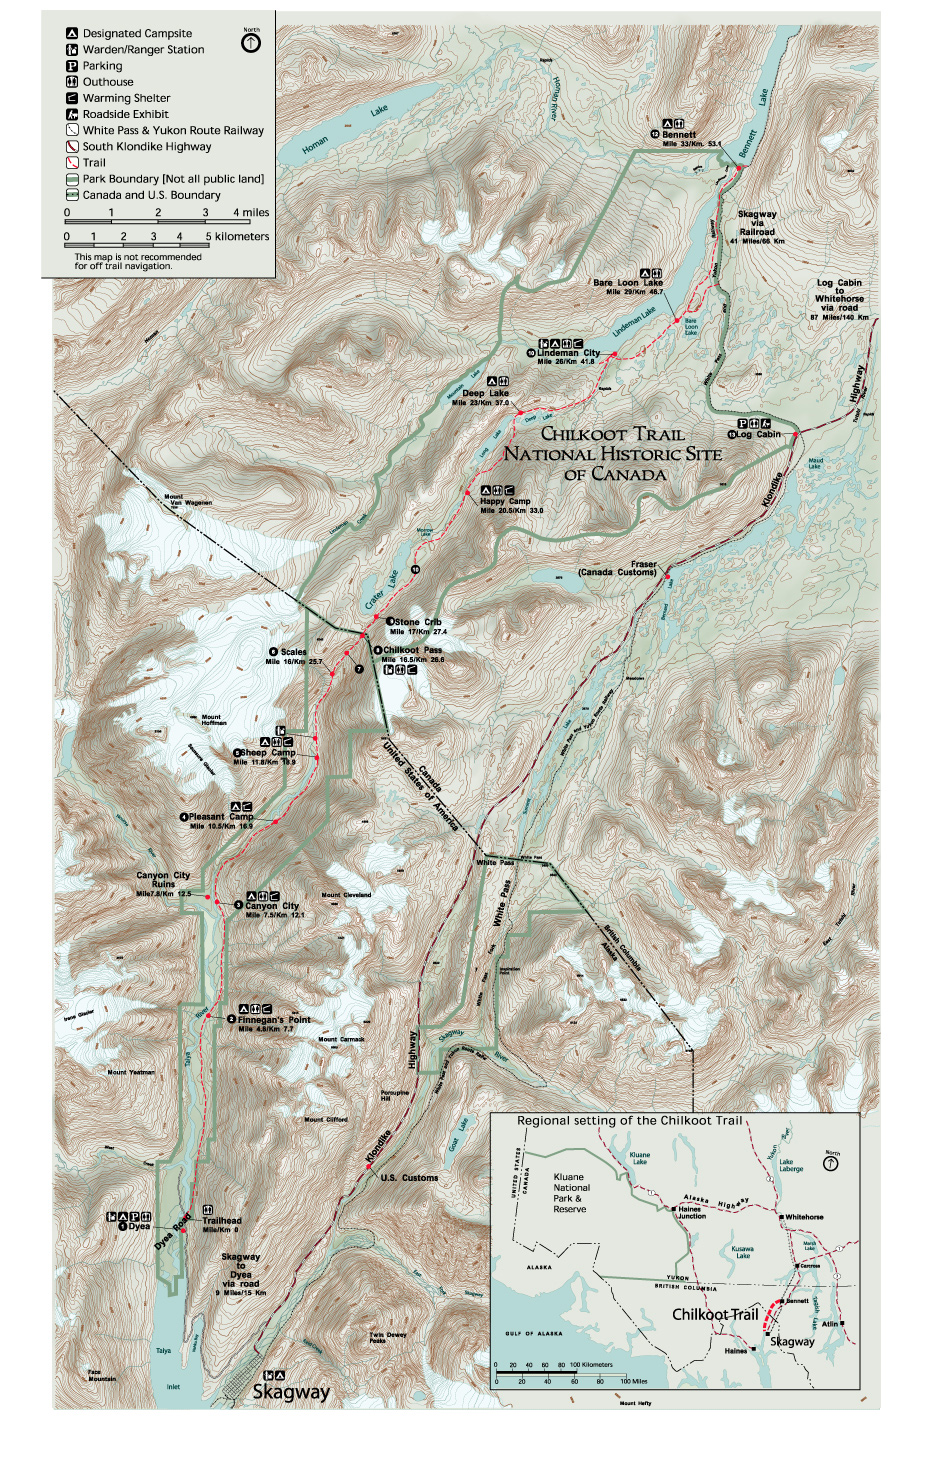 Chilkoot Trail Elevation Map.Chilkoot Trail